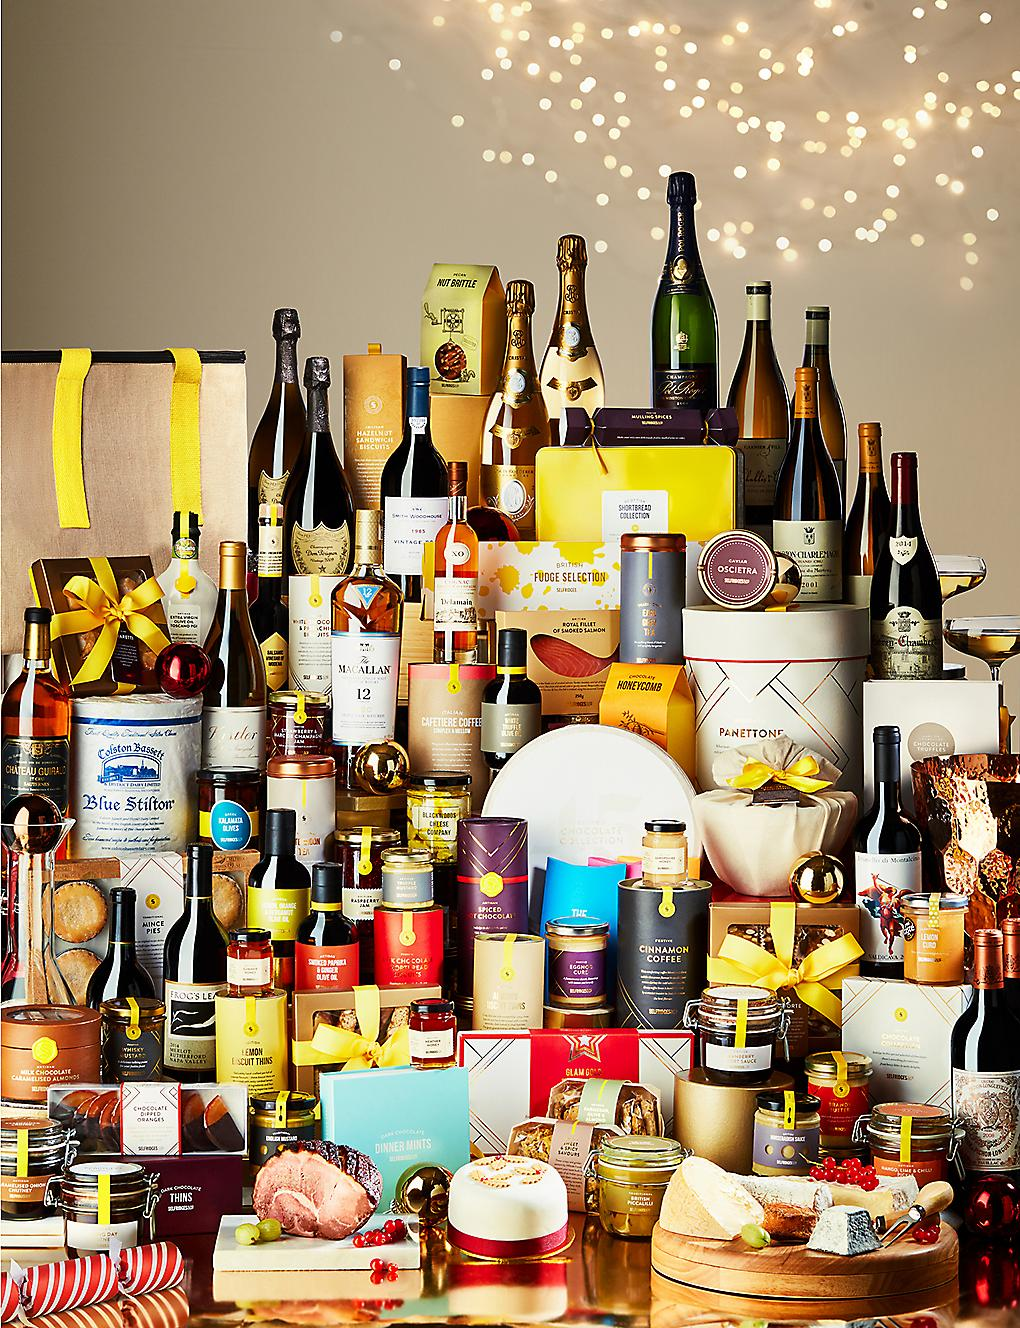 SELFRIDGES SELECTION: The Decadence Hamper